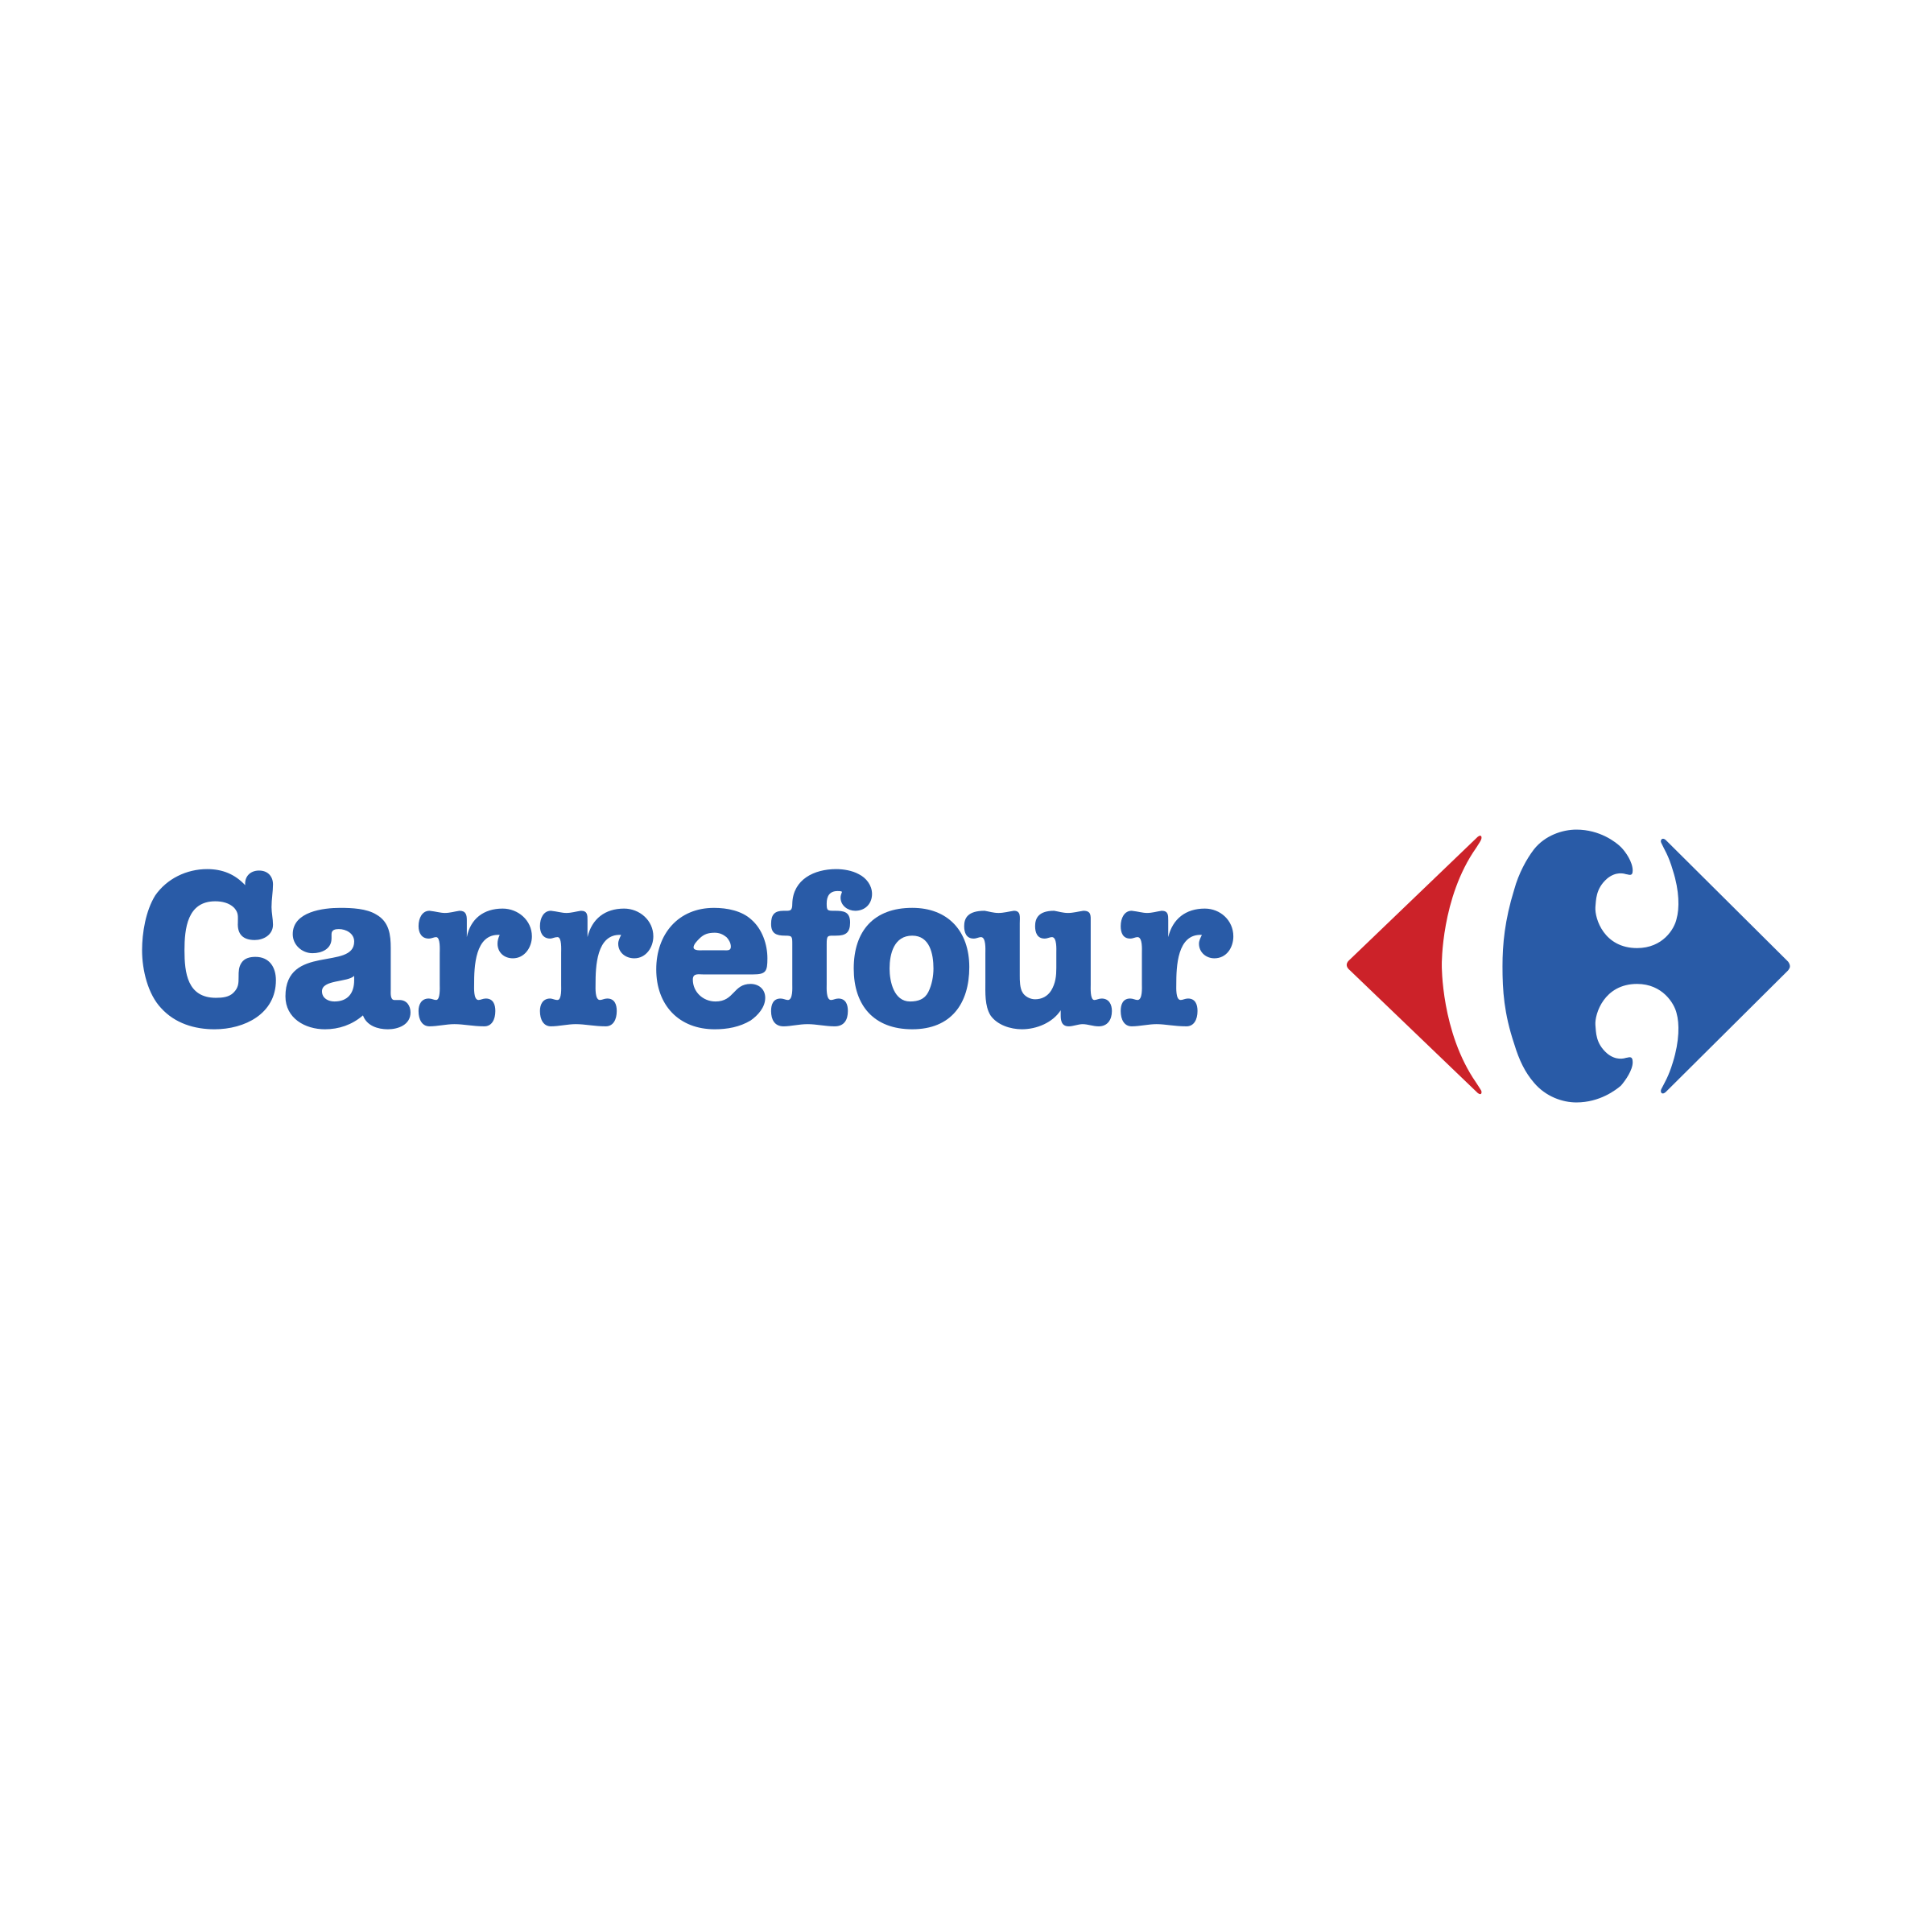 carrefour-1-logo-png-transparent